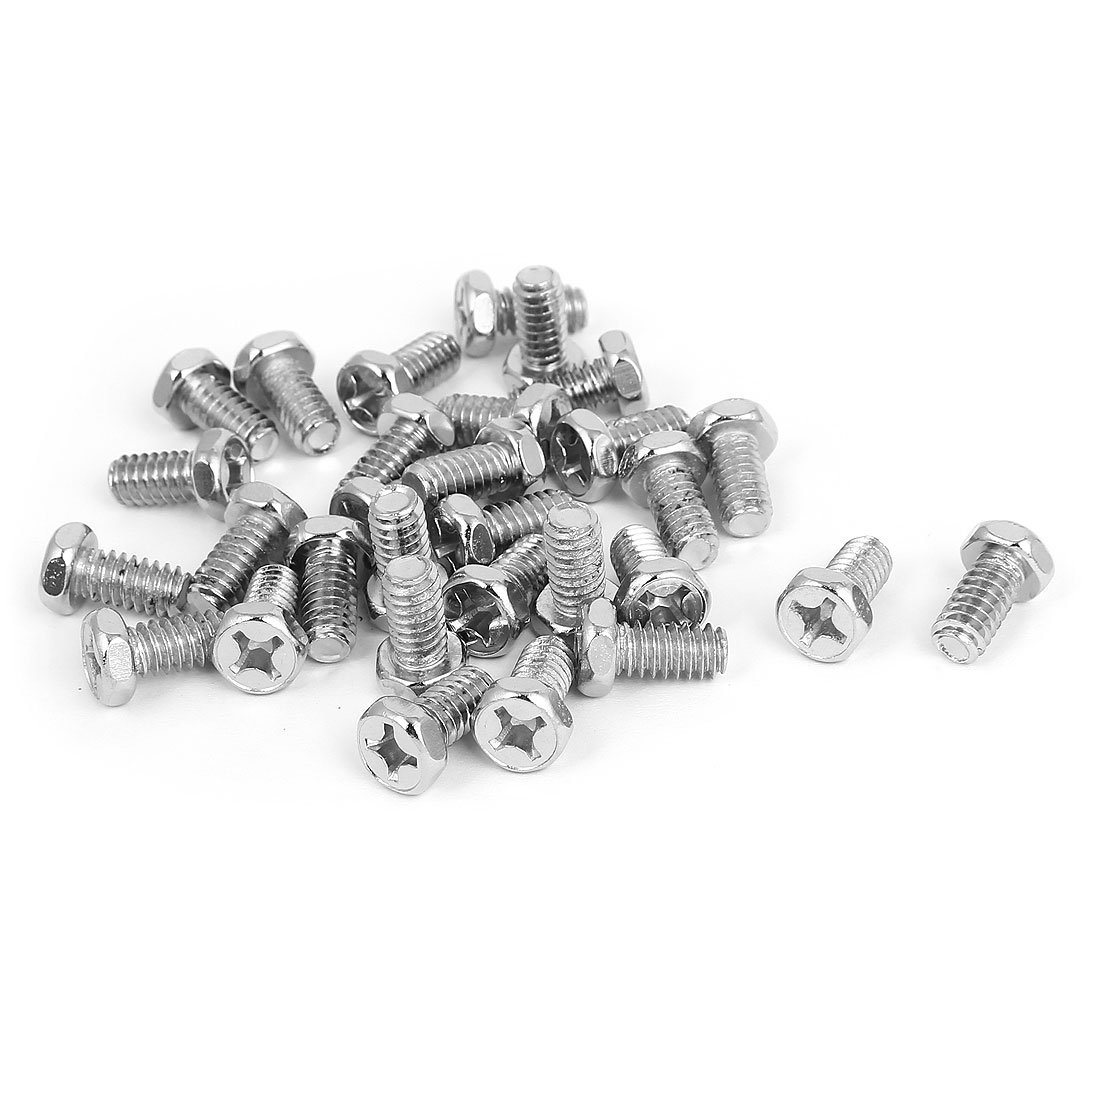 M6 x 12mm Hex Bolts Tap Phillips Head Screws Fastener Silver Tone 30pcs